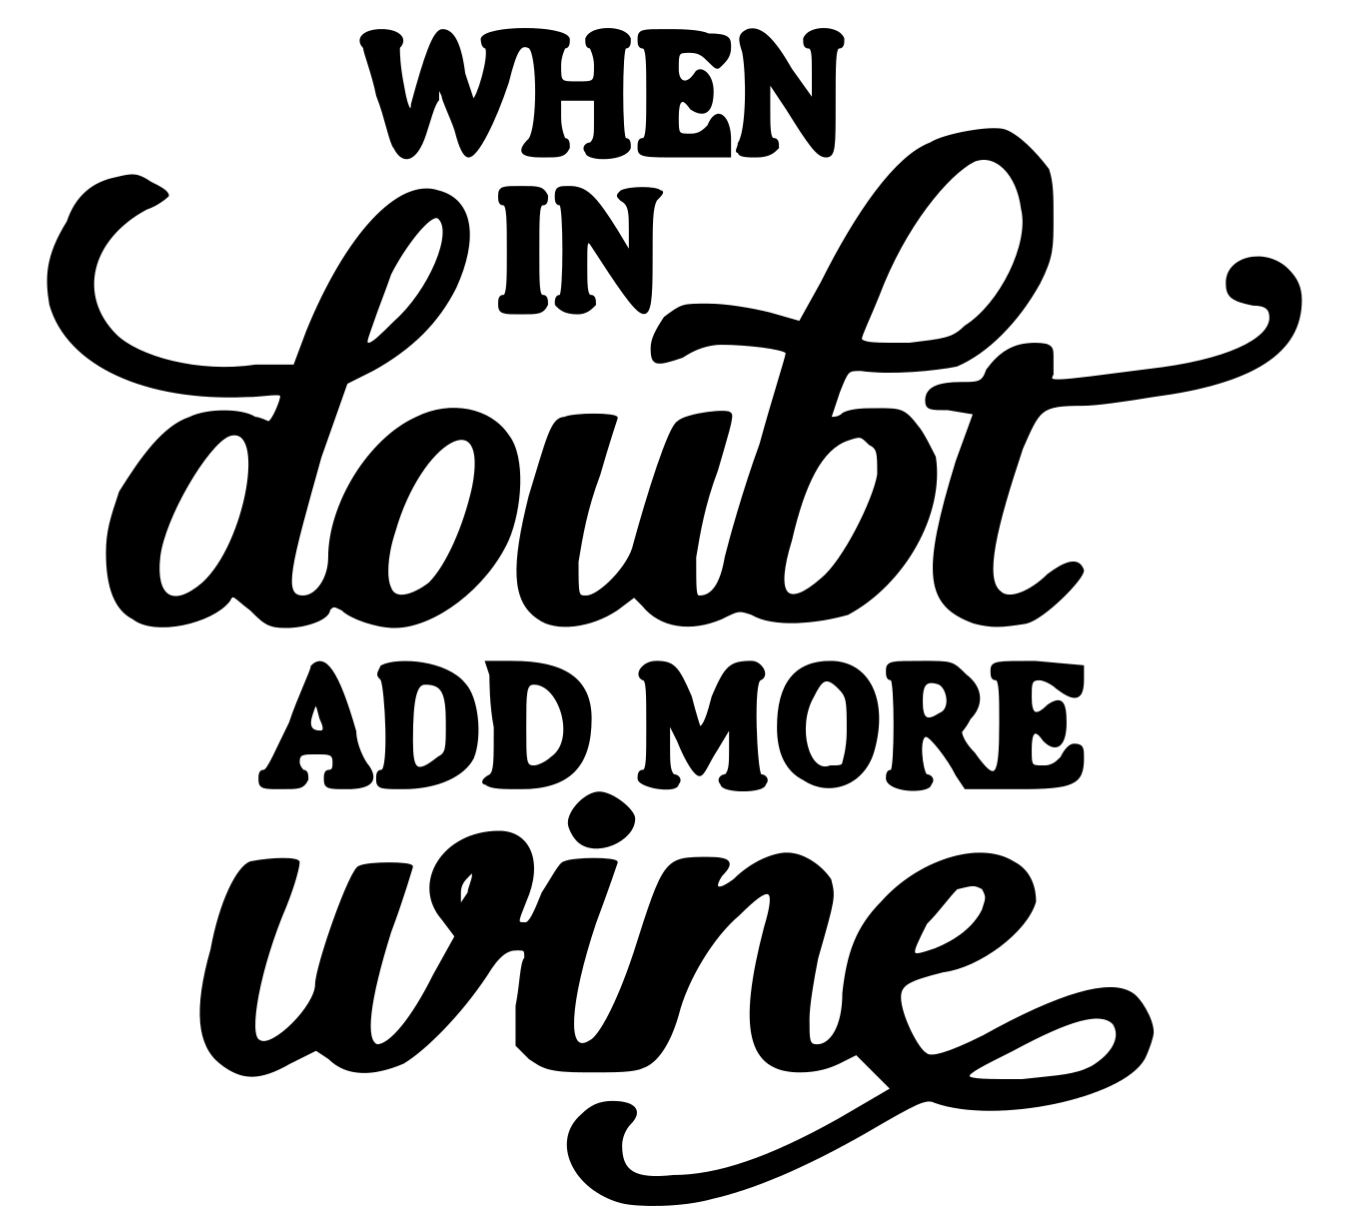 When in doubt add more wine